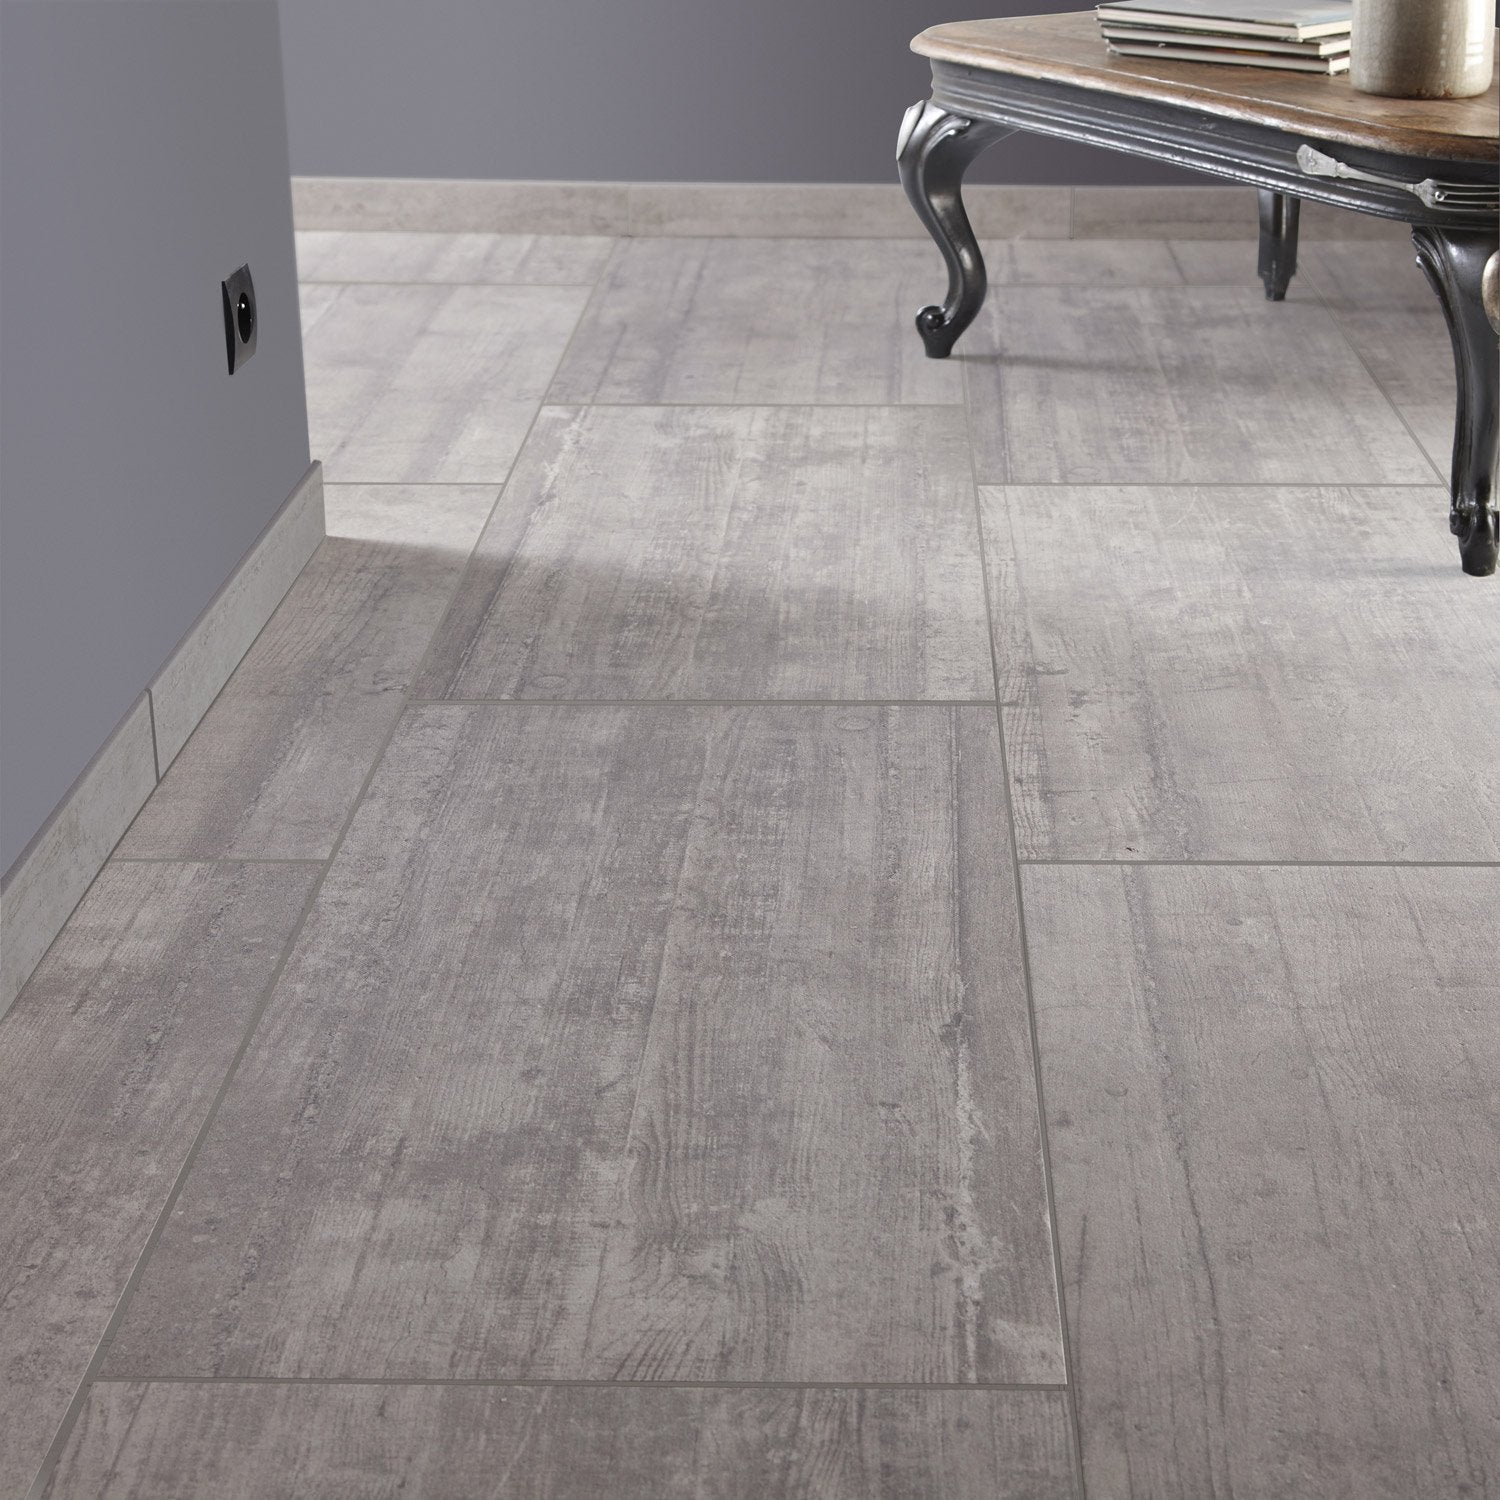 Carrelage sol gris clair brillant id es for Carrelage sol gris brillant